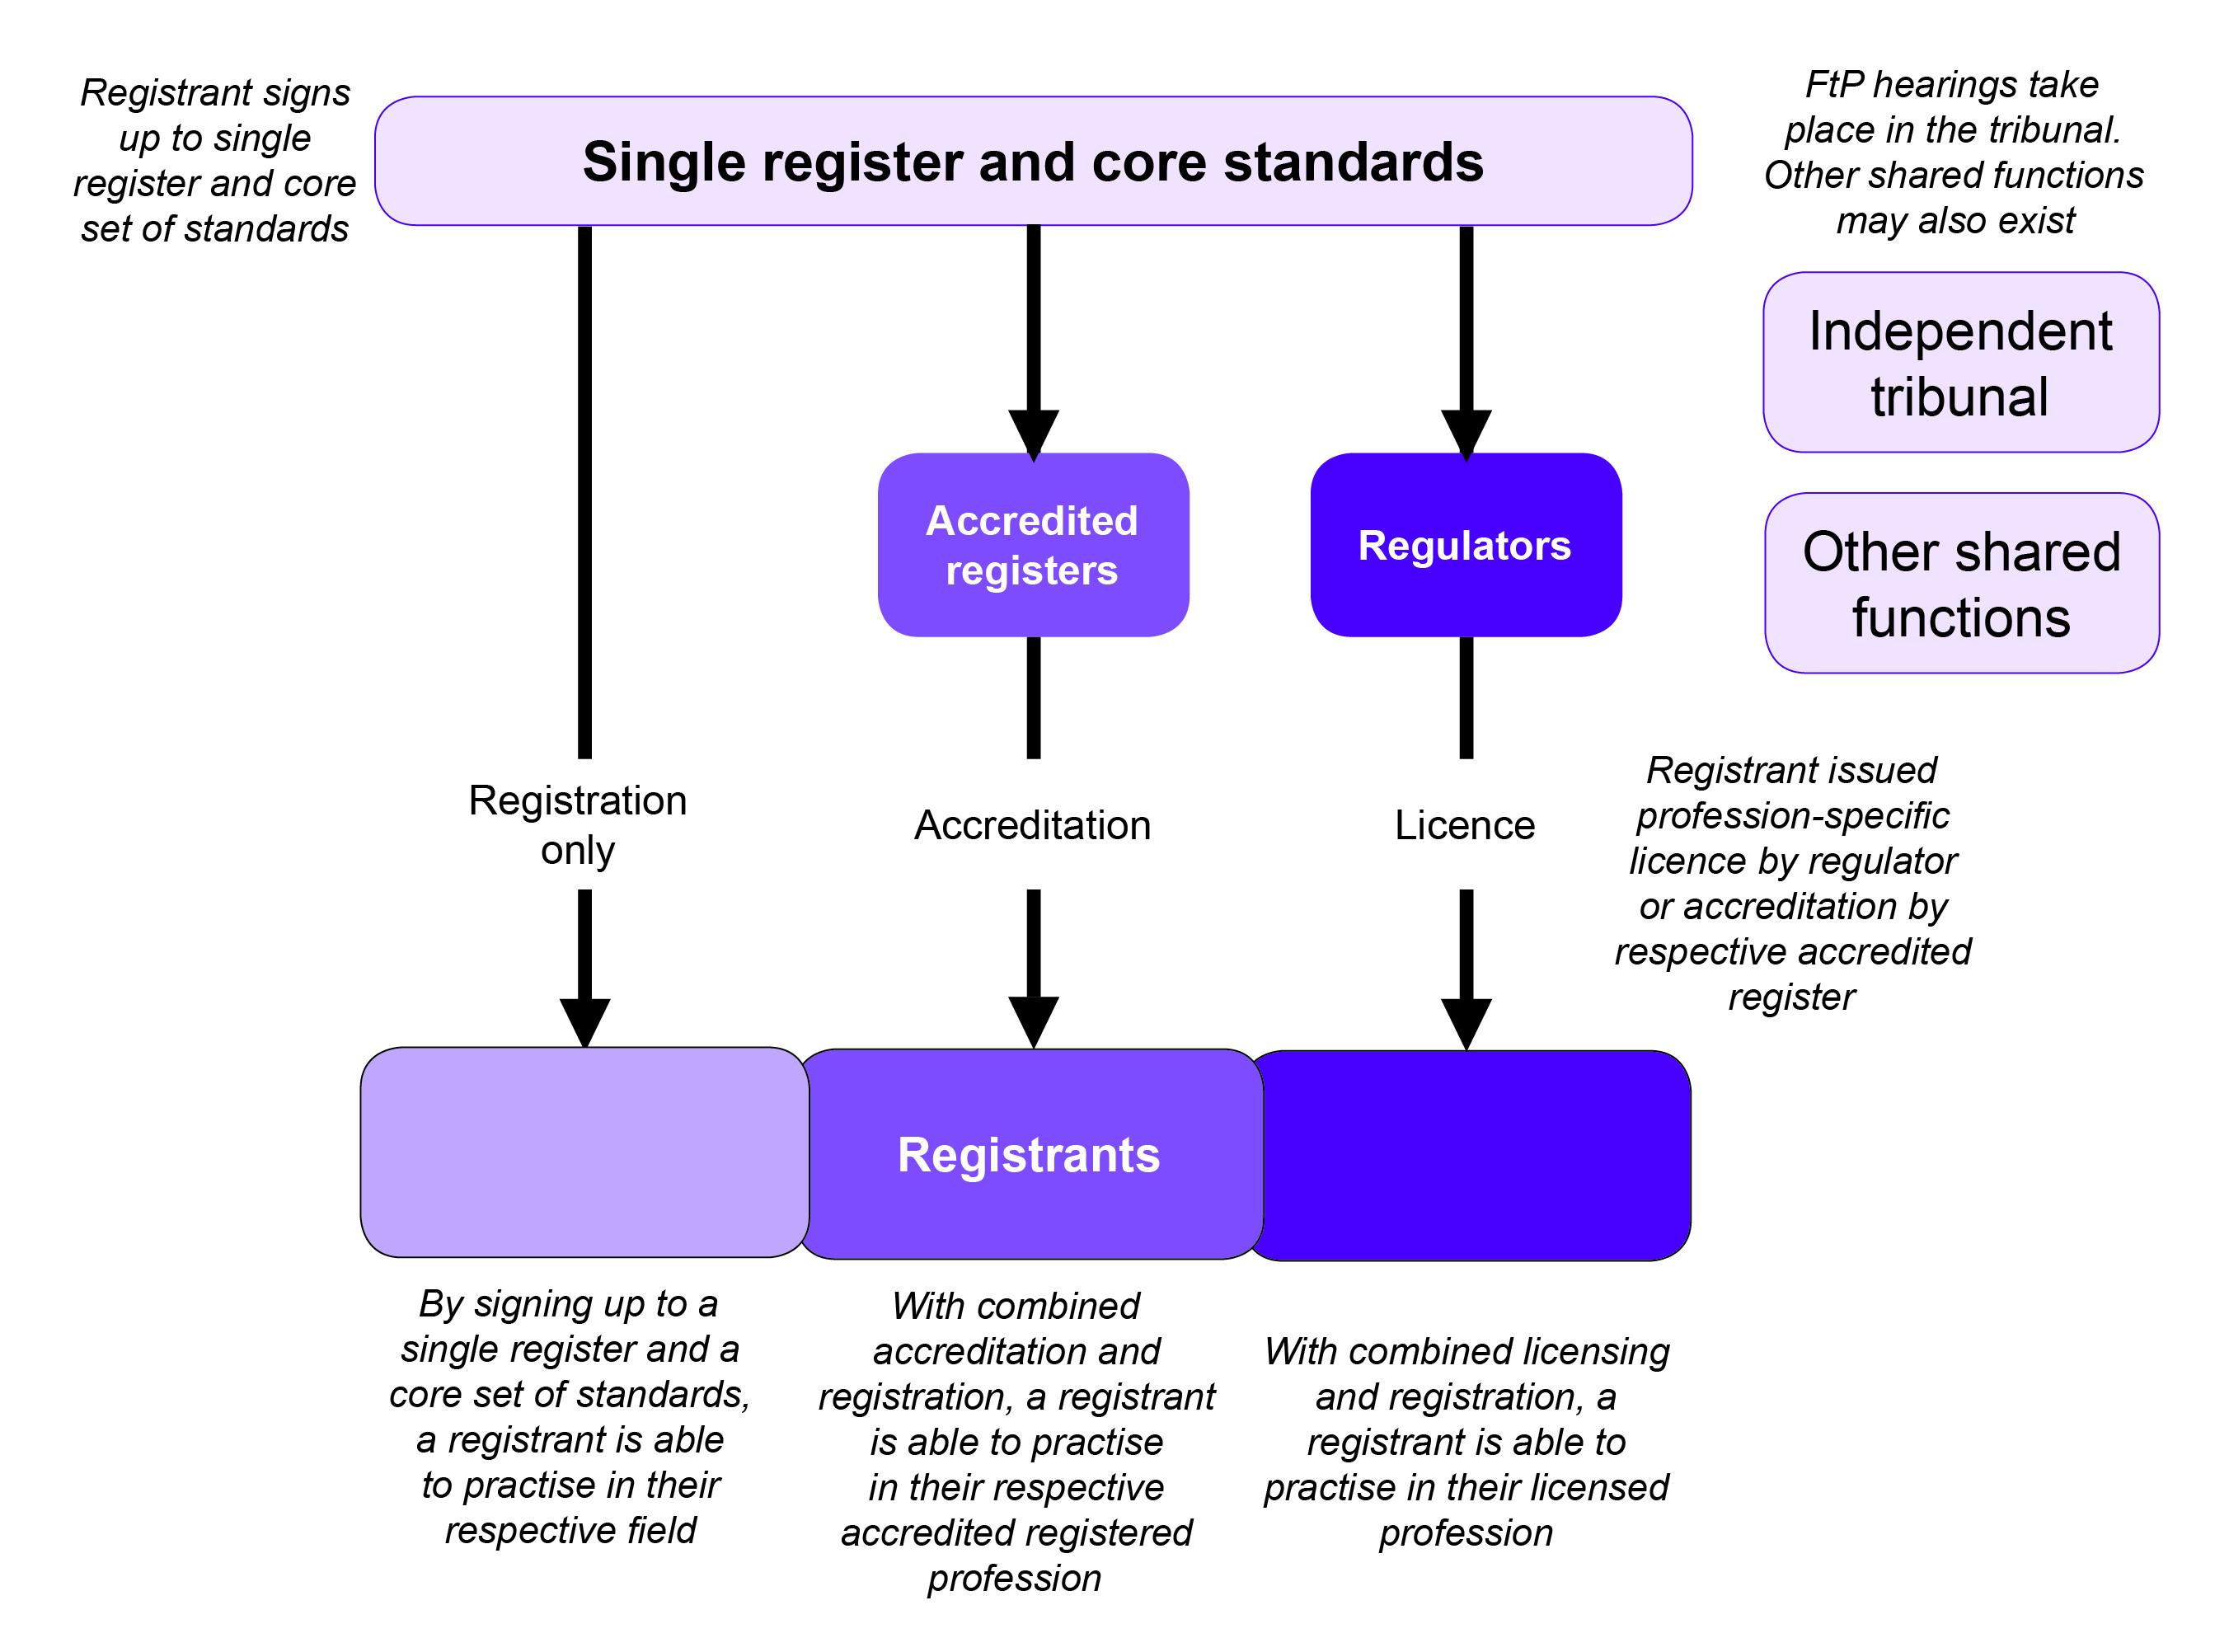 A single assurance body - professional regulation